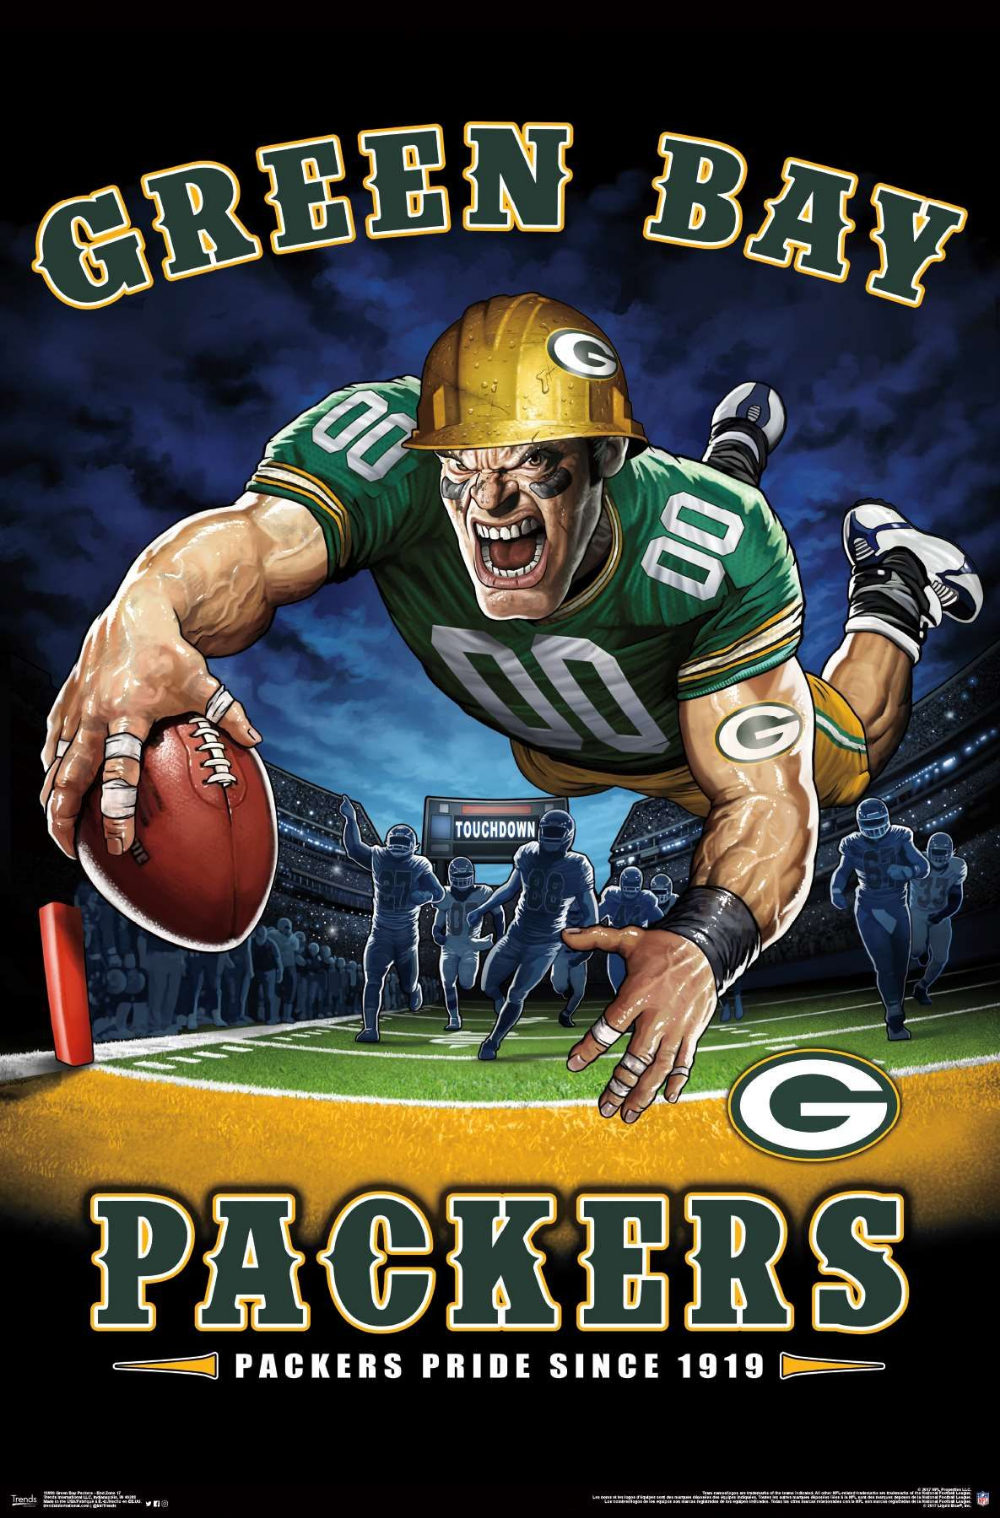 Nfl Green Bay Packers End Zone 17 Green Bay Packers Wallpaper Green Bay Packers Football Green Bay